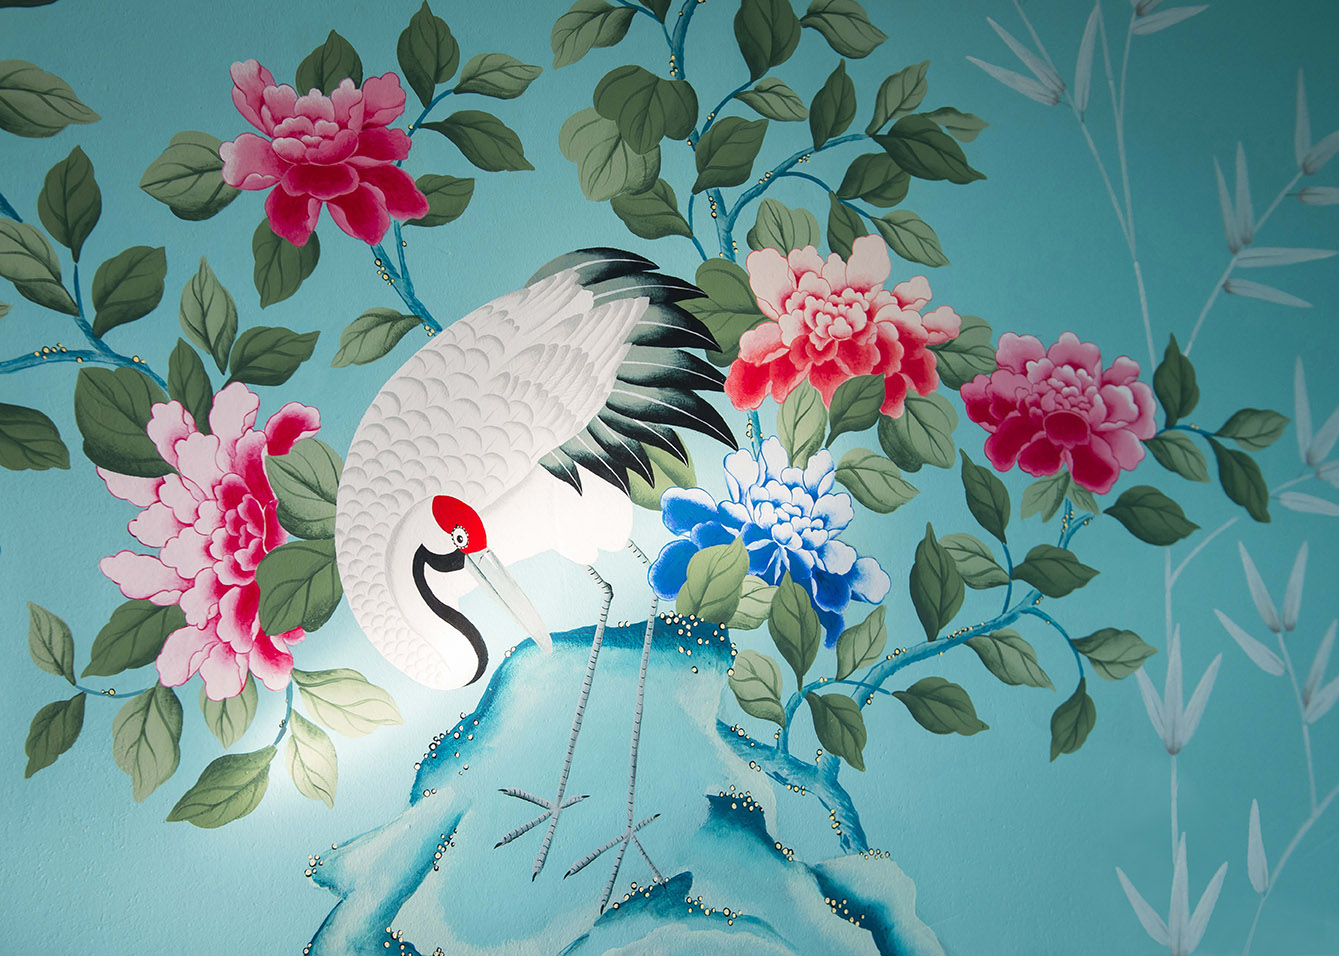 diane hill hand painted interiors turquoise chinoiserie mural nursery room detail